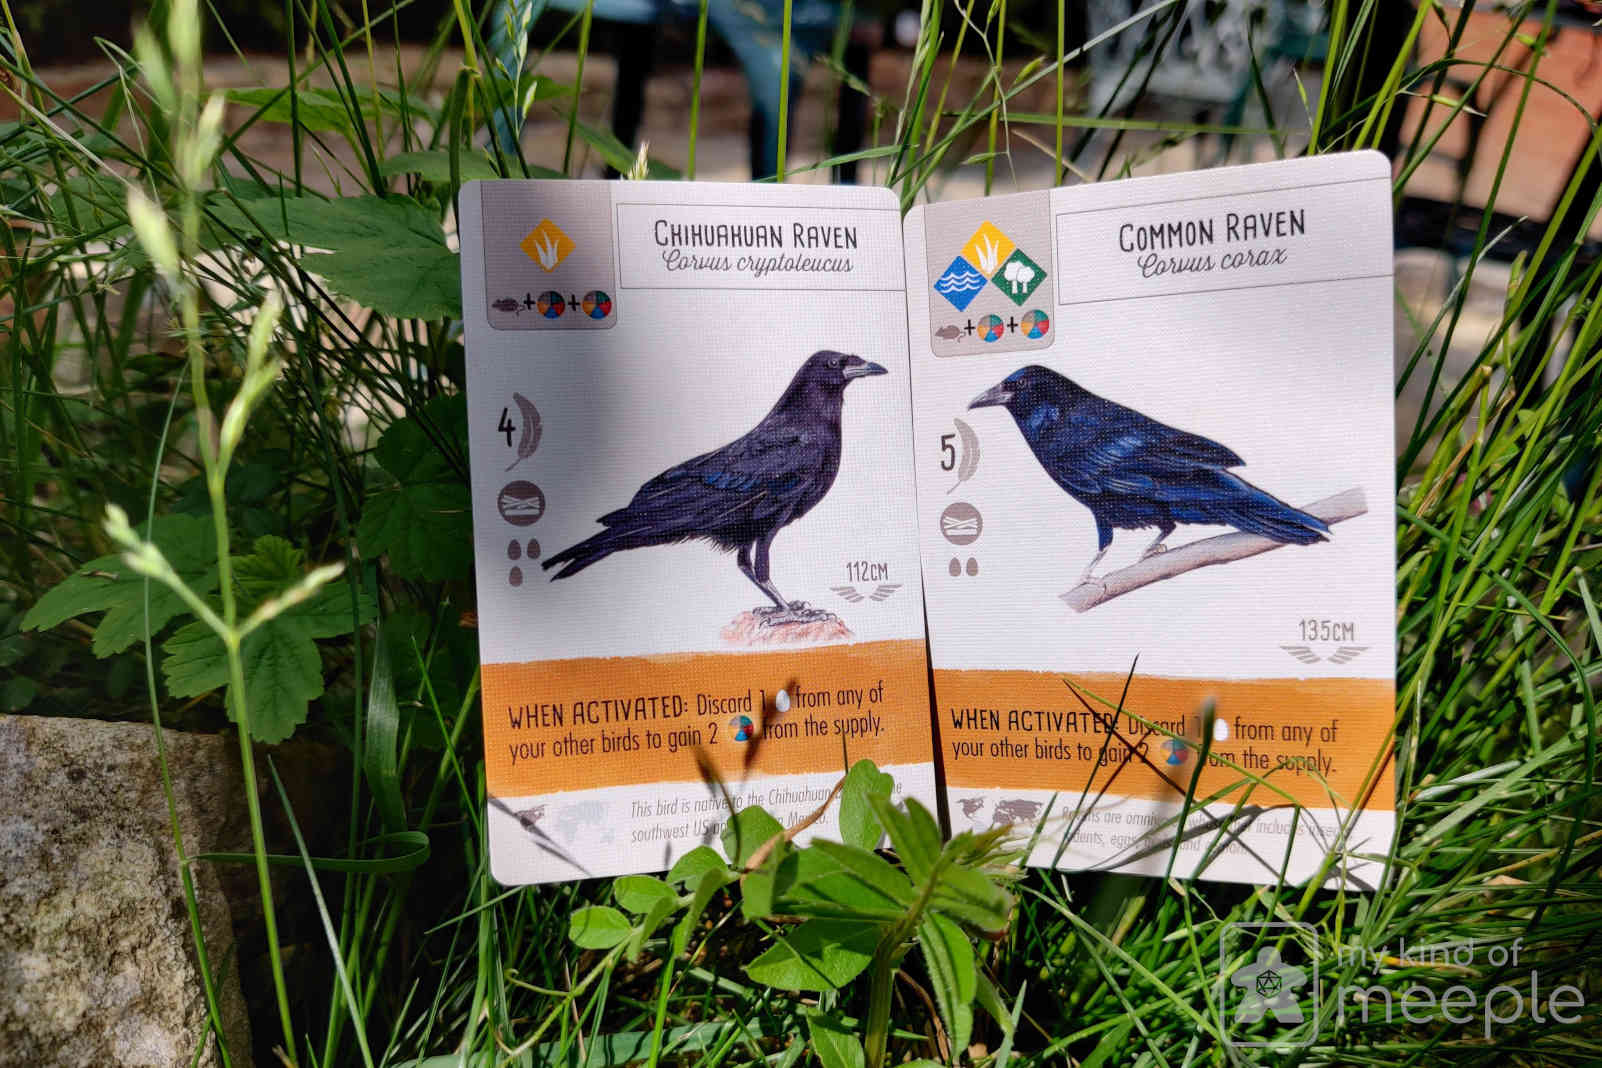 Chihuahuan Raven and Common Raven cards in grass in my garden